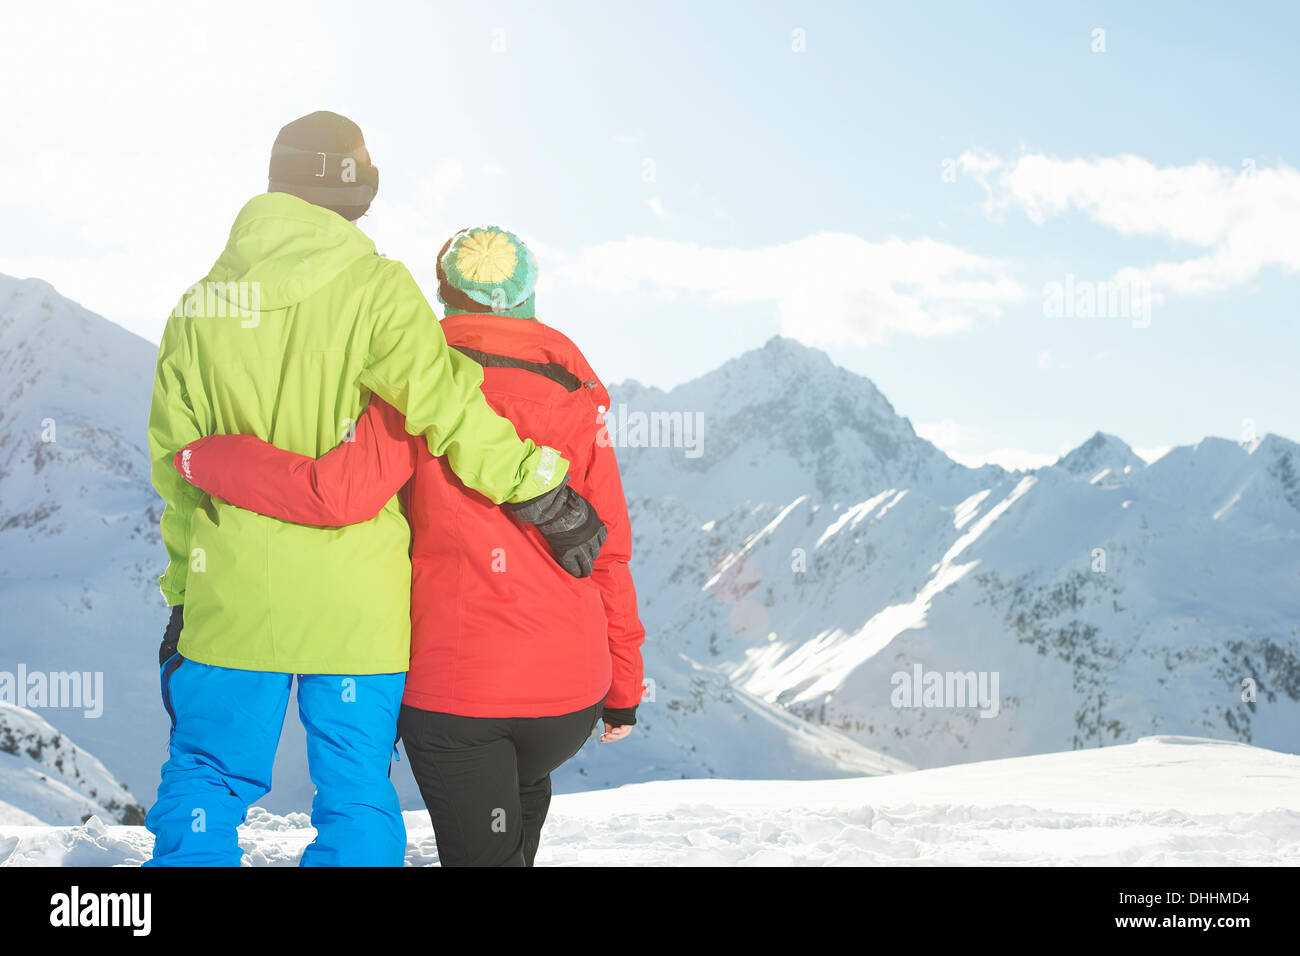 Couple looking at mountains, Kuhtai, Austria - Stock Image